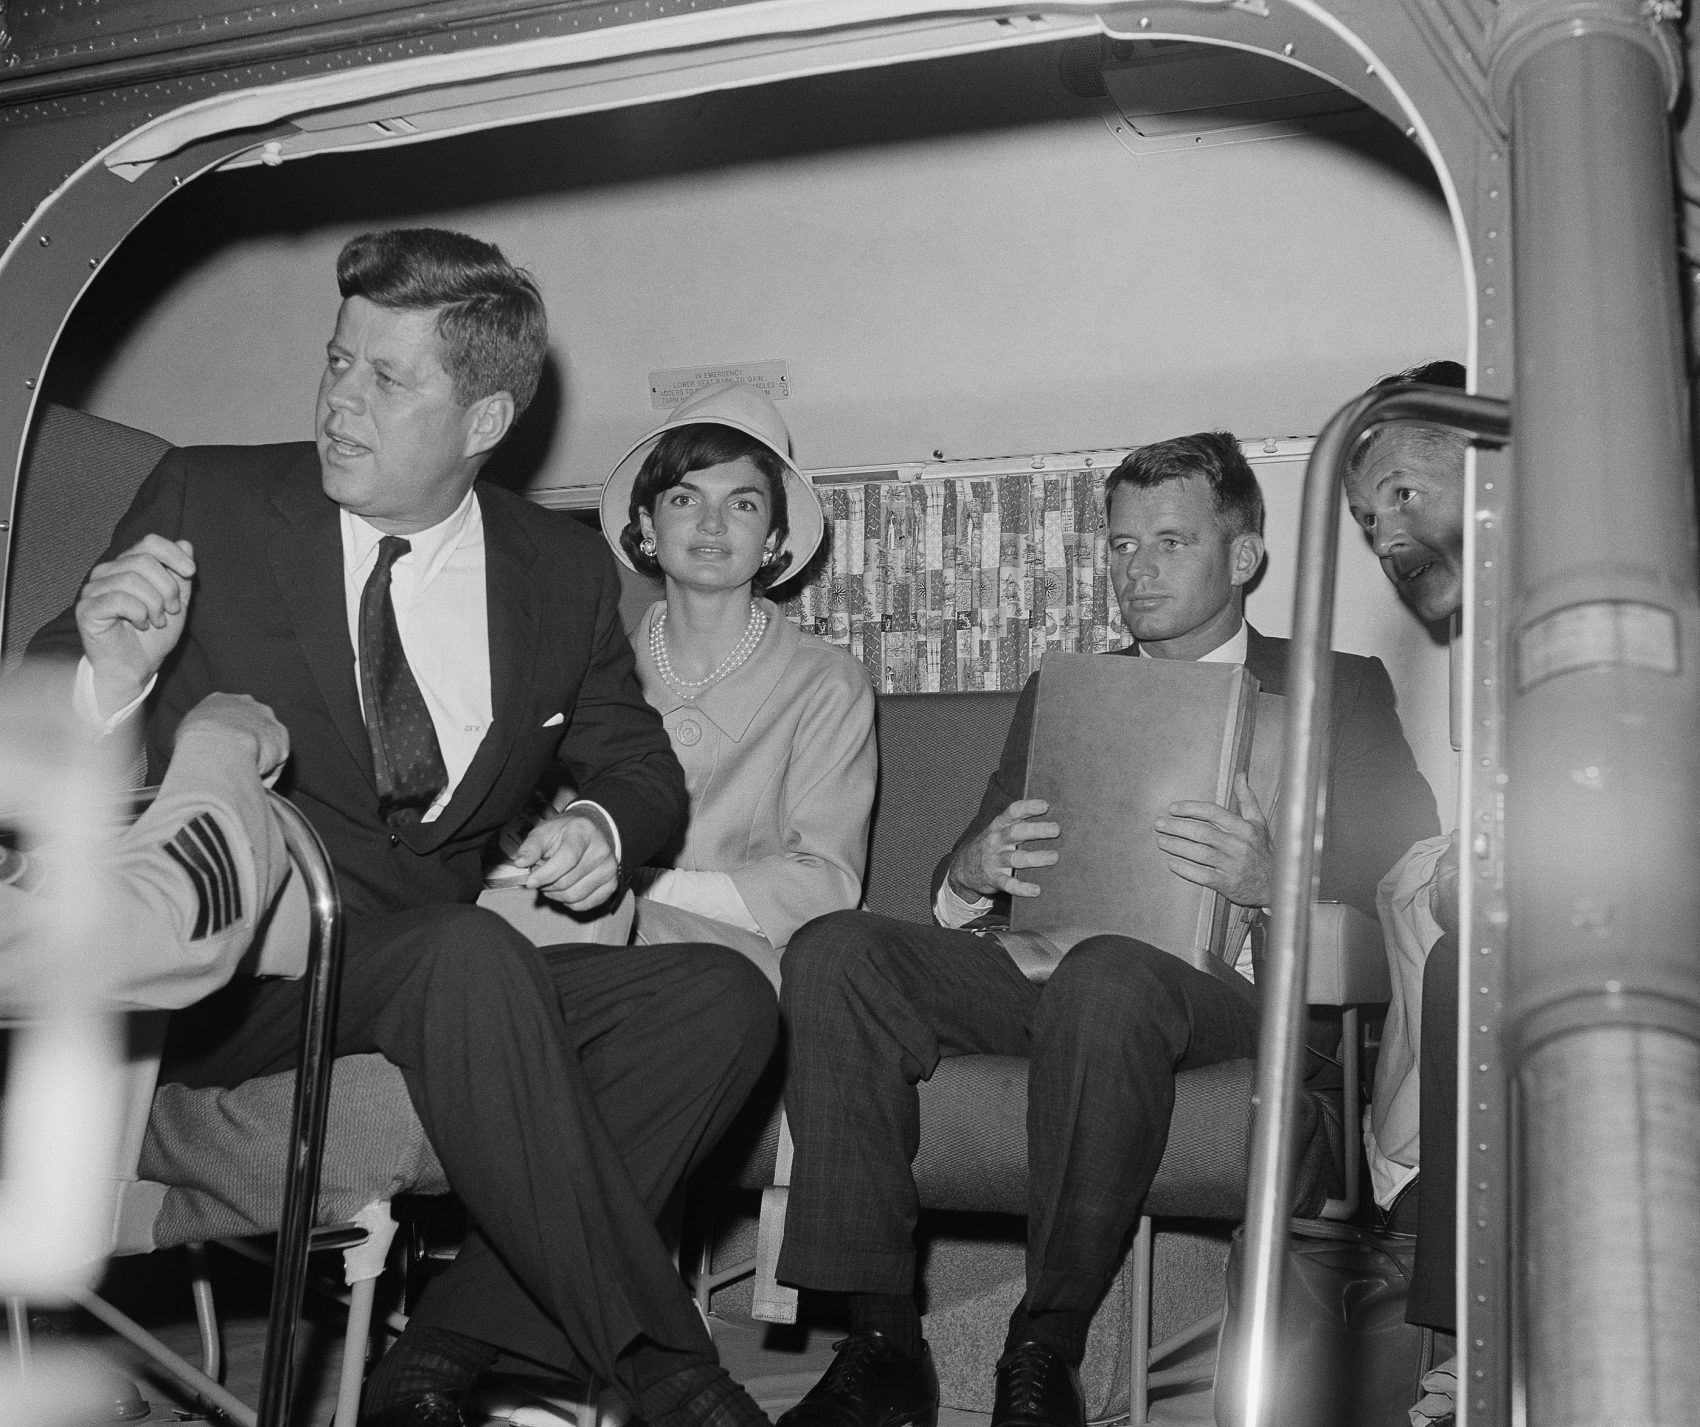 From The Kennedy Compound To The National Seashore, JFK's Legacy On